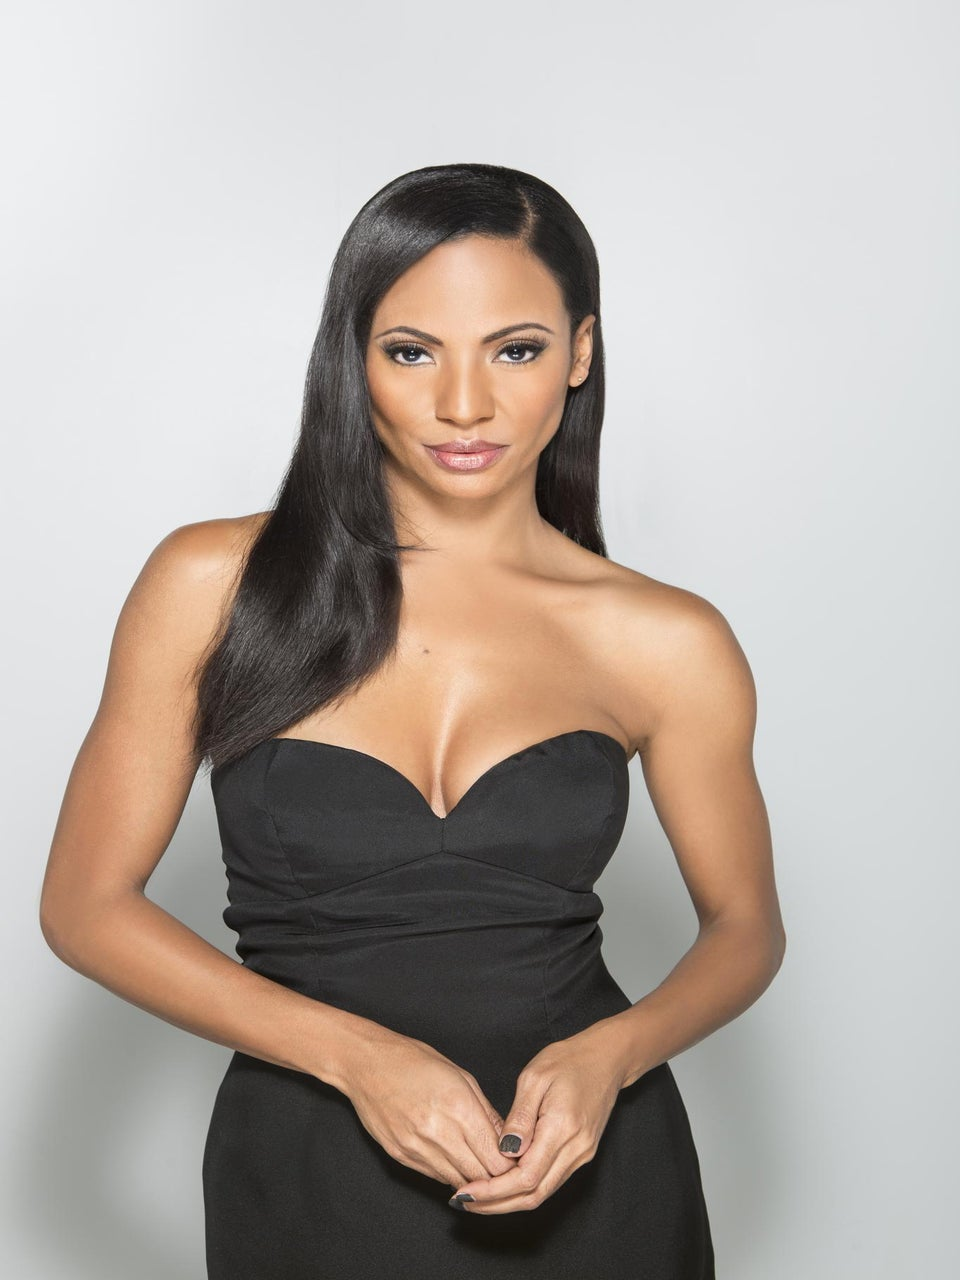 Millionaire Matchmaker's Candace Smith On How To Make A Love Connection In 2015